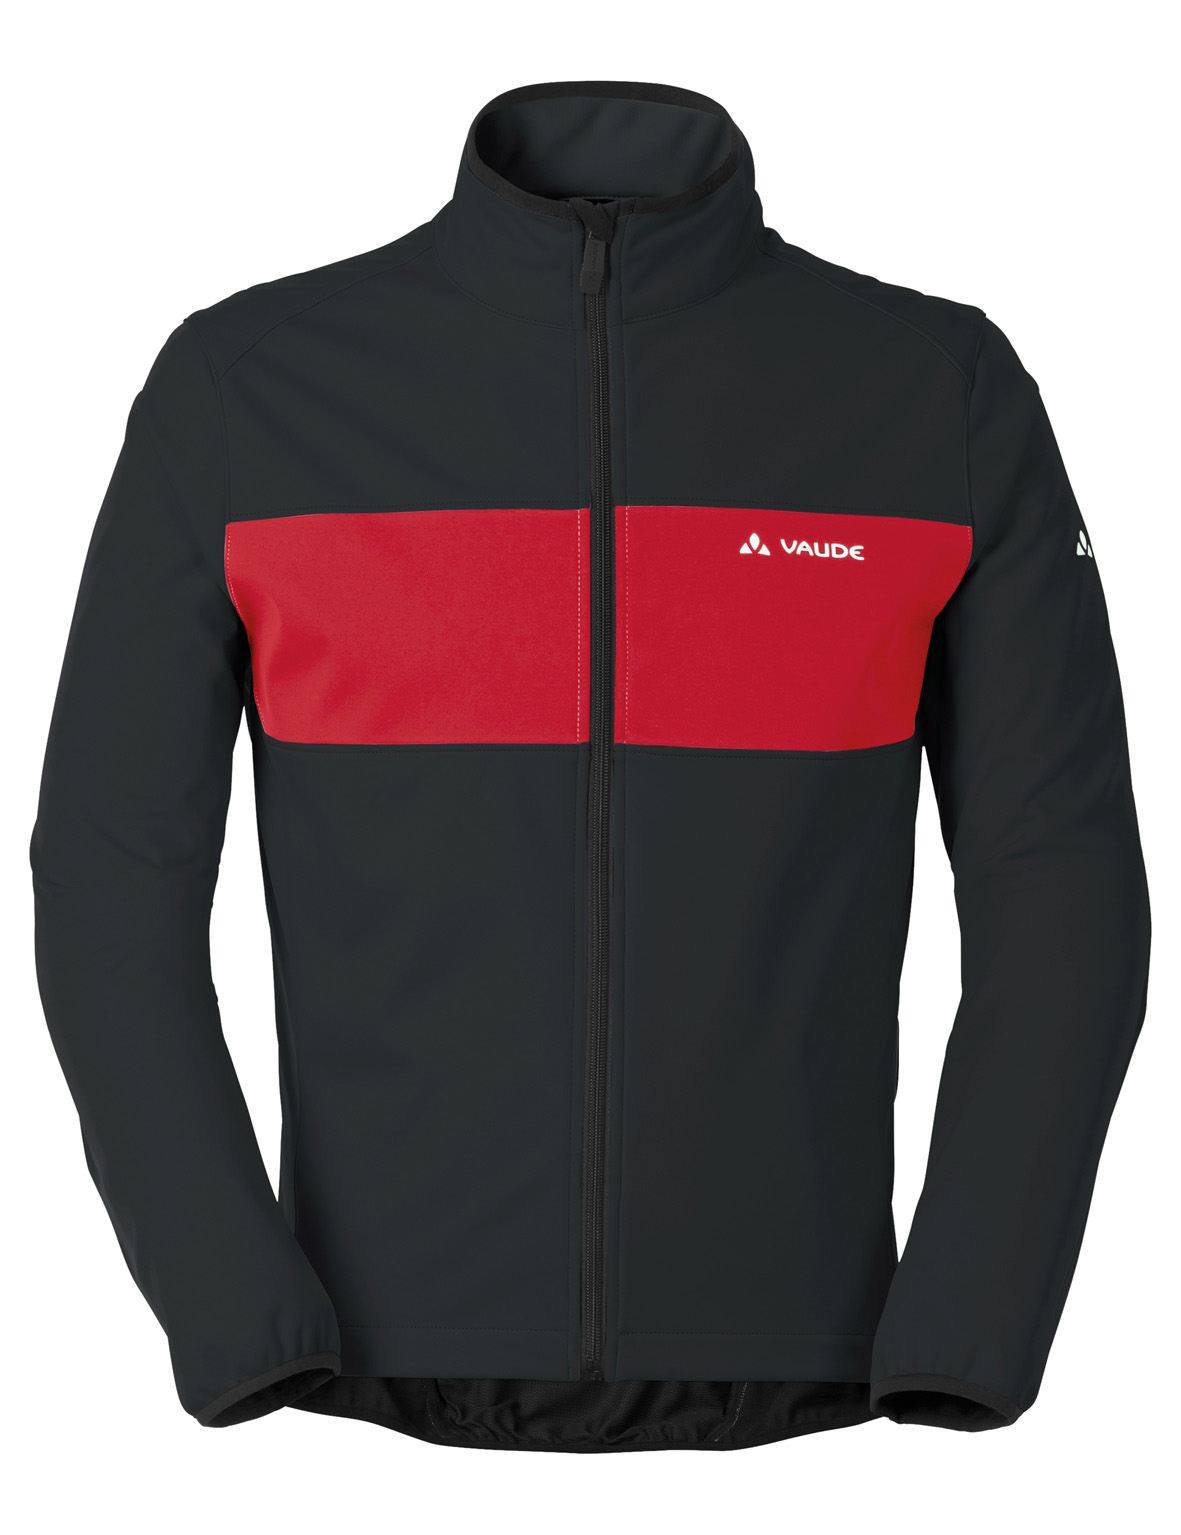 VAUDE Men´s Matera Softshell Jacket III black Größe L - VAUDE Men´s Matera Softshell Jacket III black Größe L